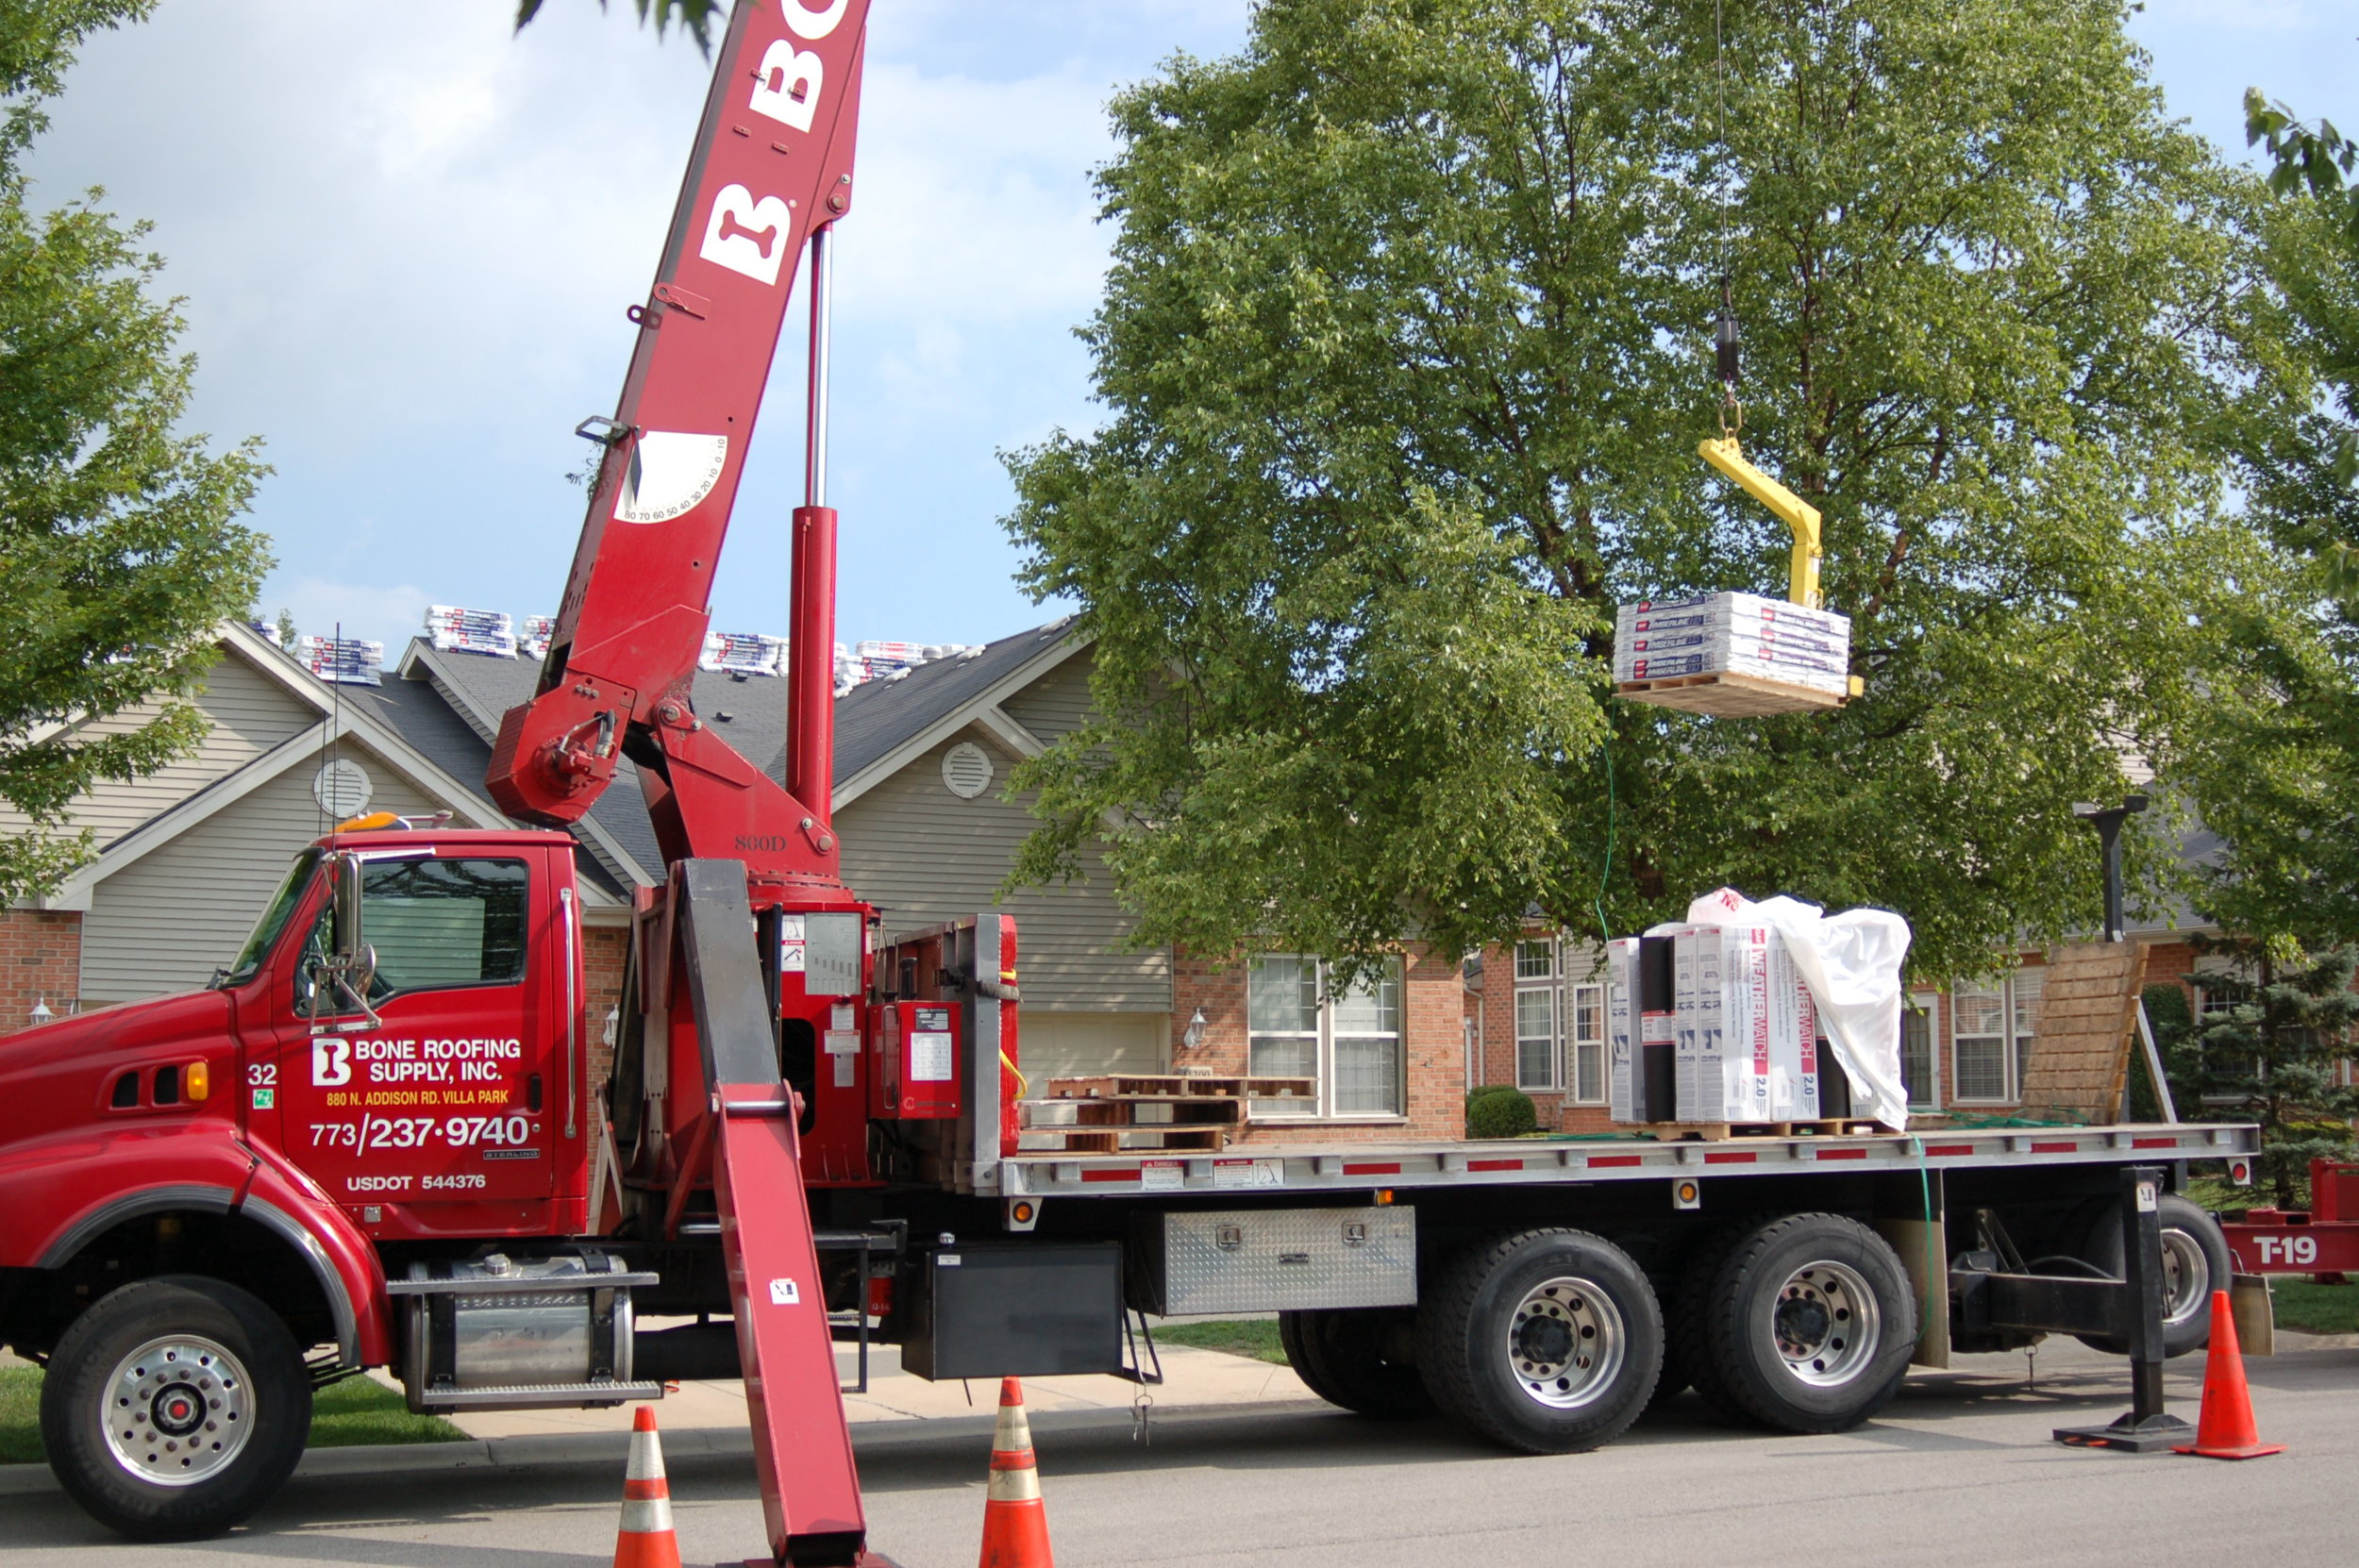 Roofing Distribution - From commercial to residential roofing distribution.